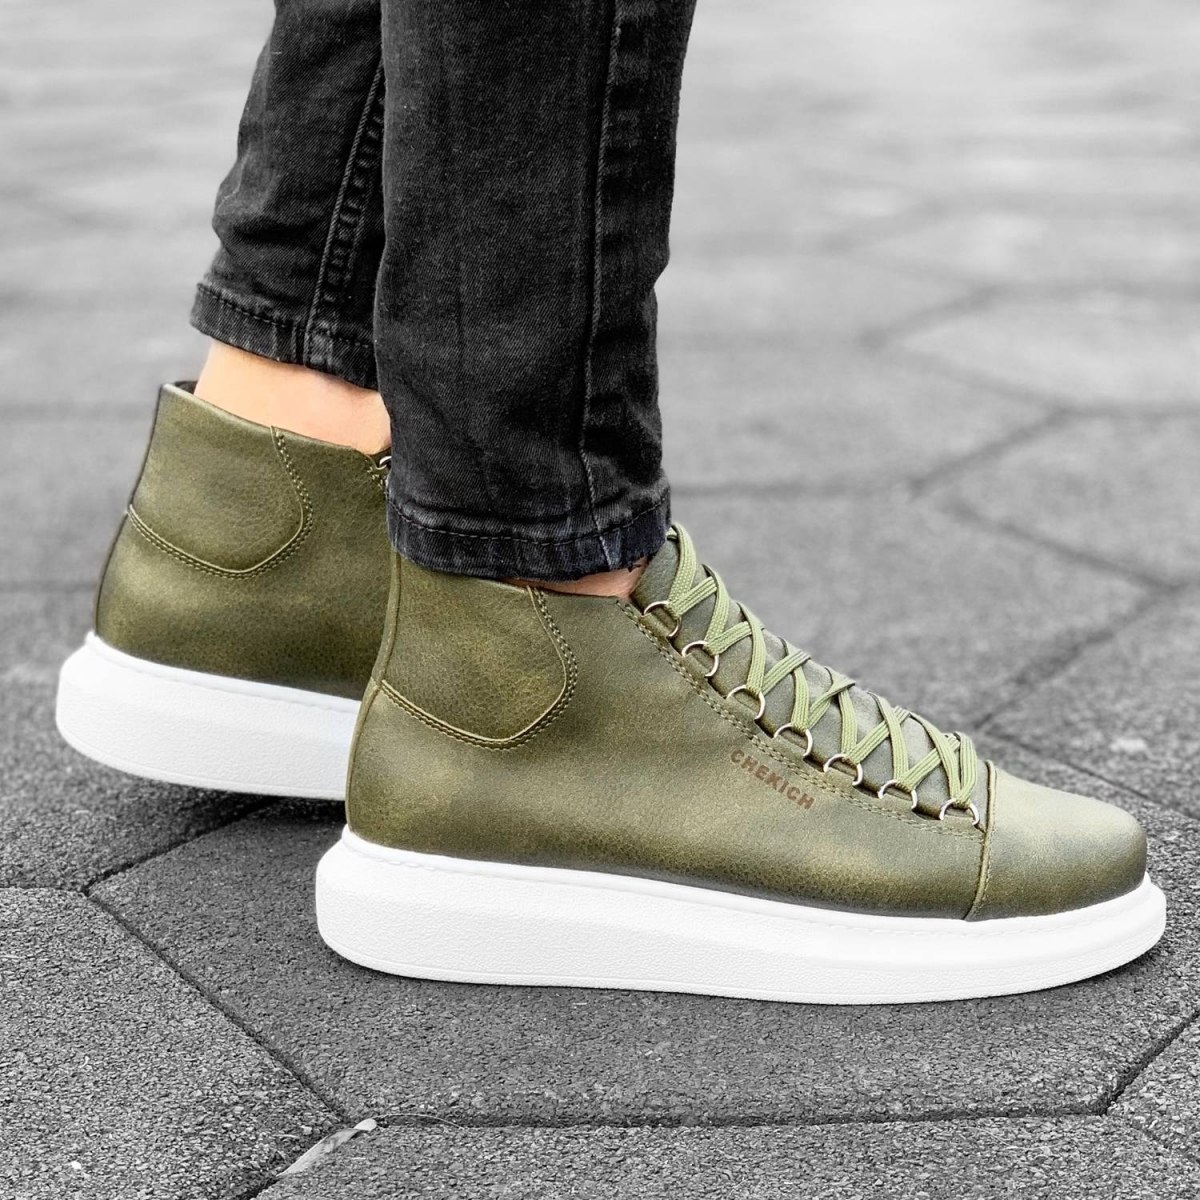 Boosted-Sole High Top...